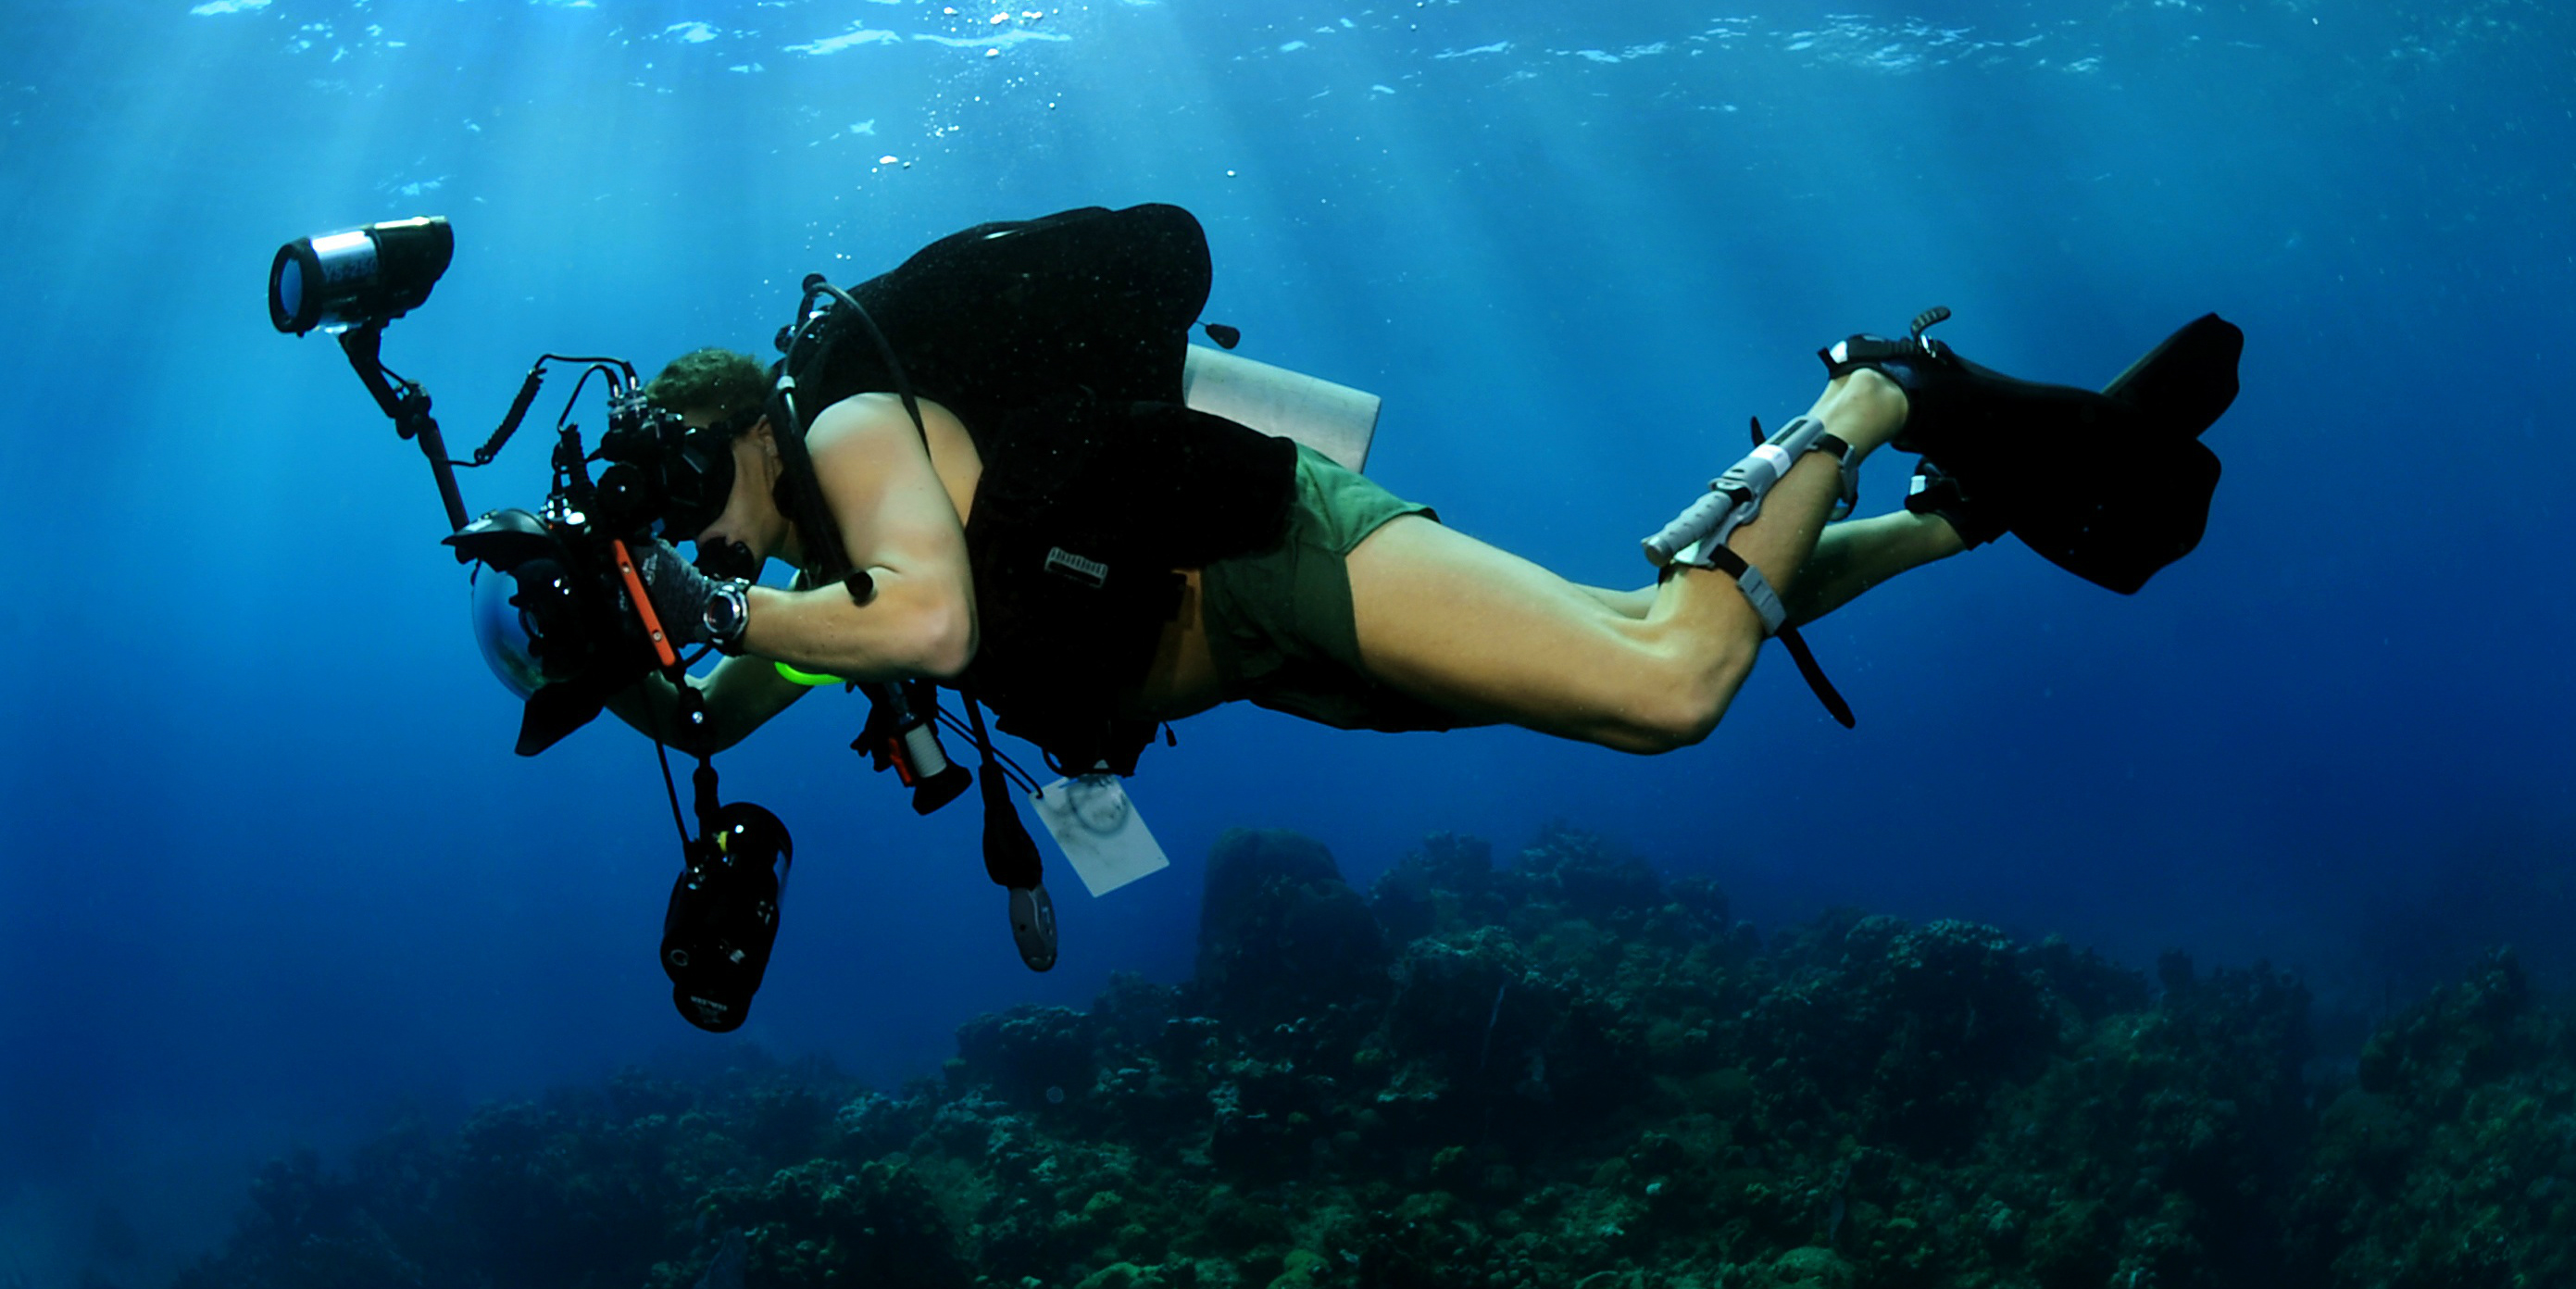 A PADI pro works as an underwater photographer.